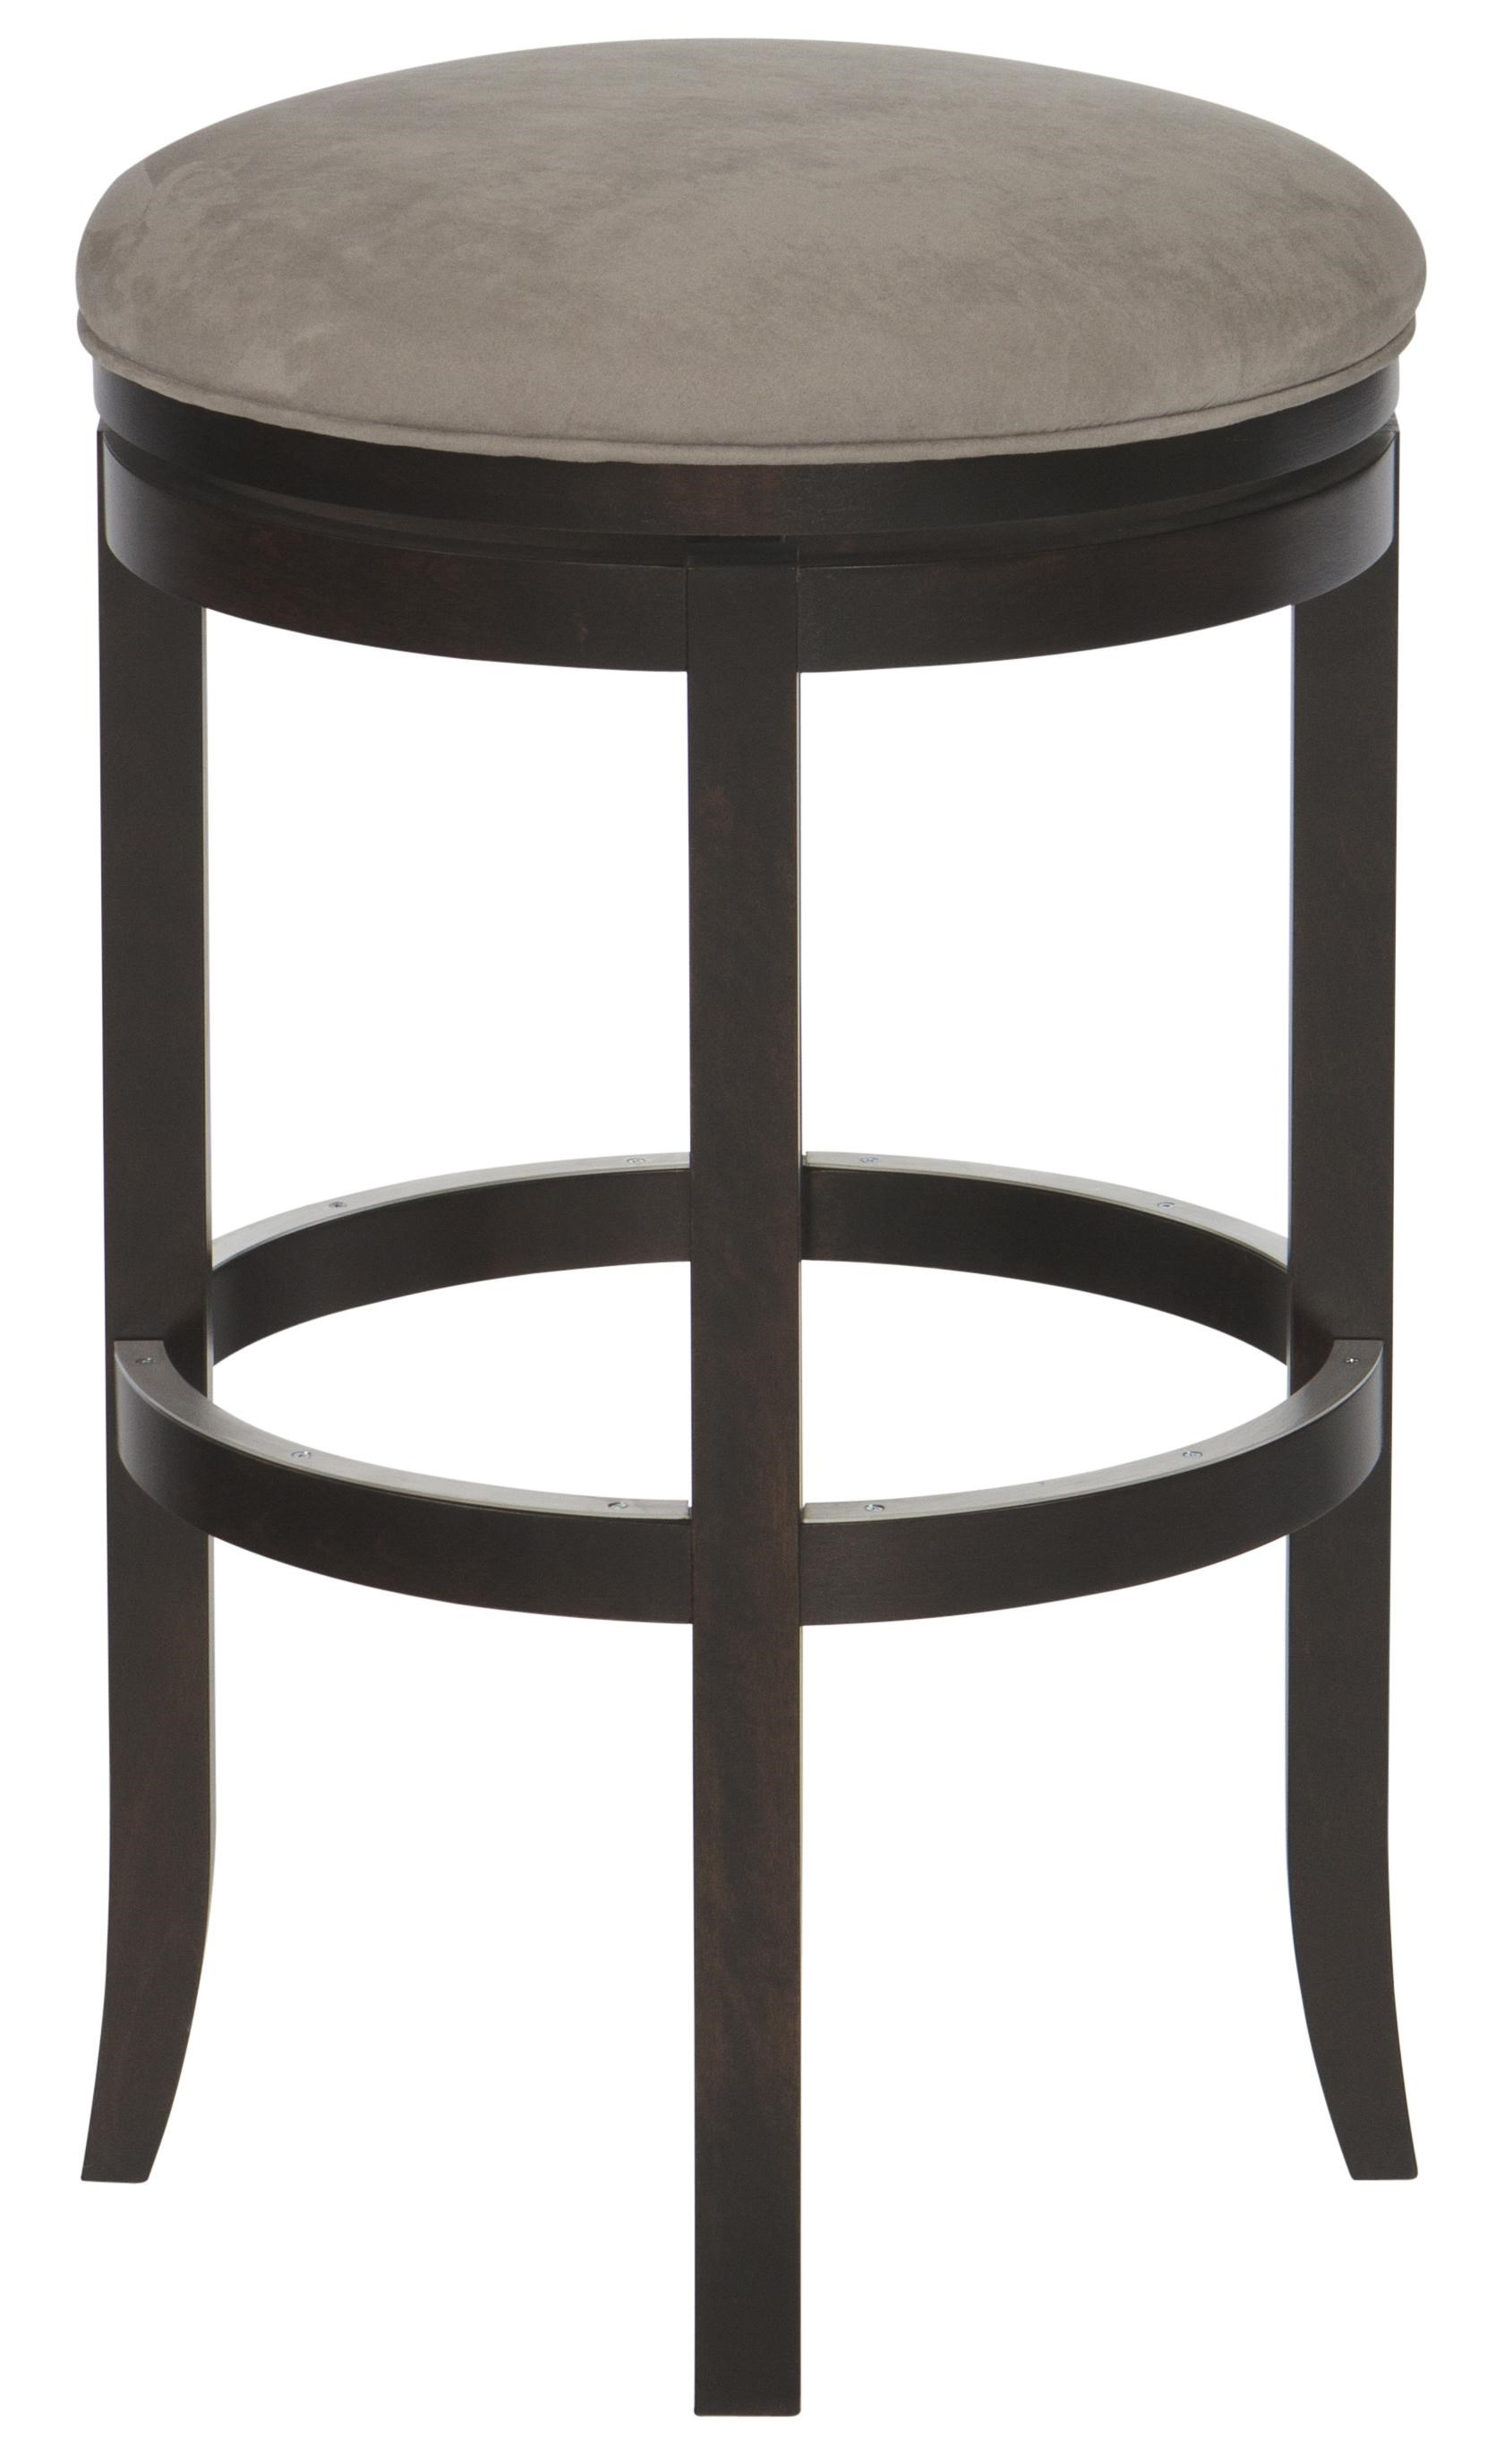 Canadel Bar Stools Customizable 30quot Upholstered Swivel  : products2Fcanadel2Fcolor2Fbar20stools20stosto208004 30 s bjpgscalebothampwidth500ampheight500ampfsharpen25ampdown from www.godbyhomefurnishings.com size 500 x 500 jpeg 19kB